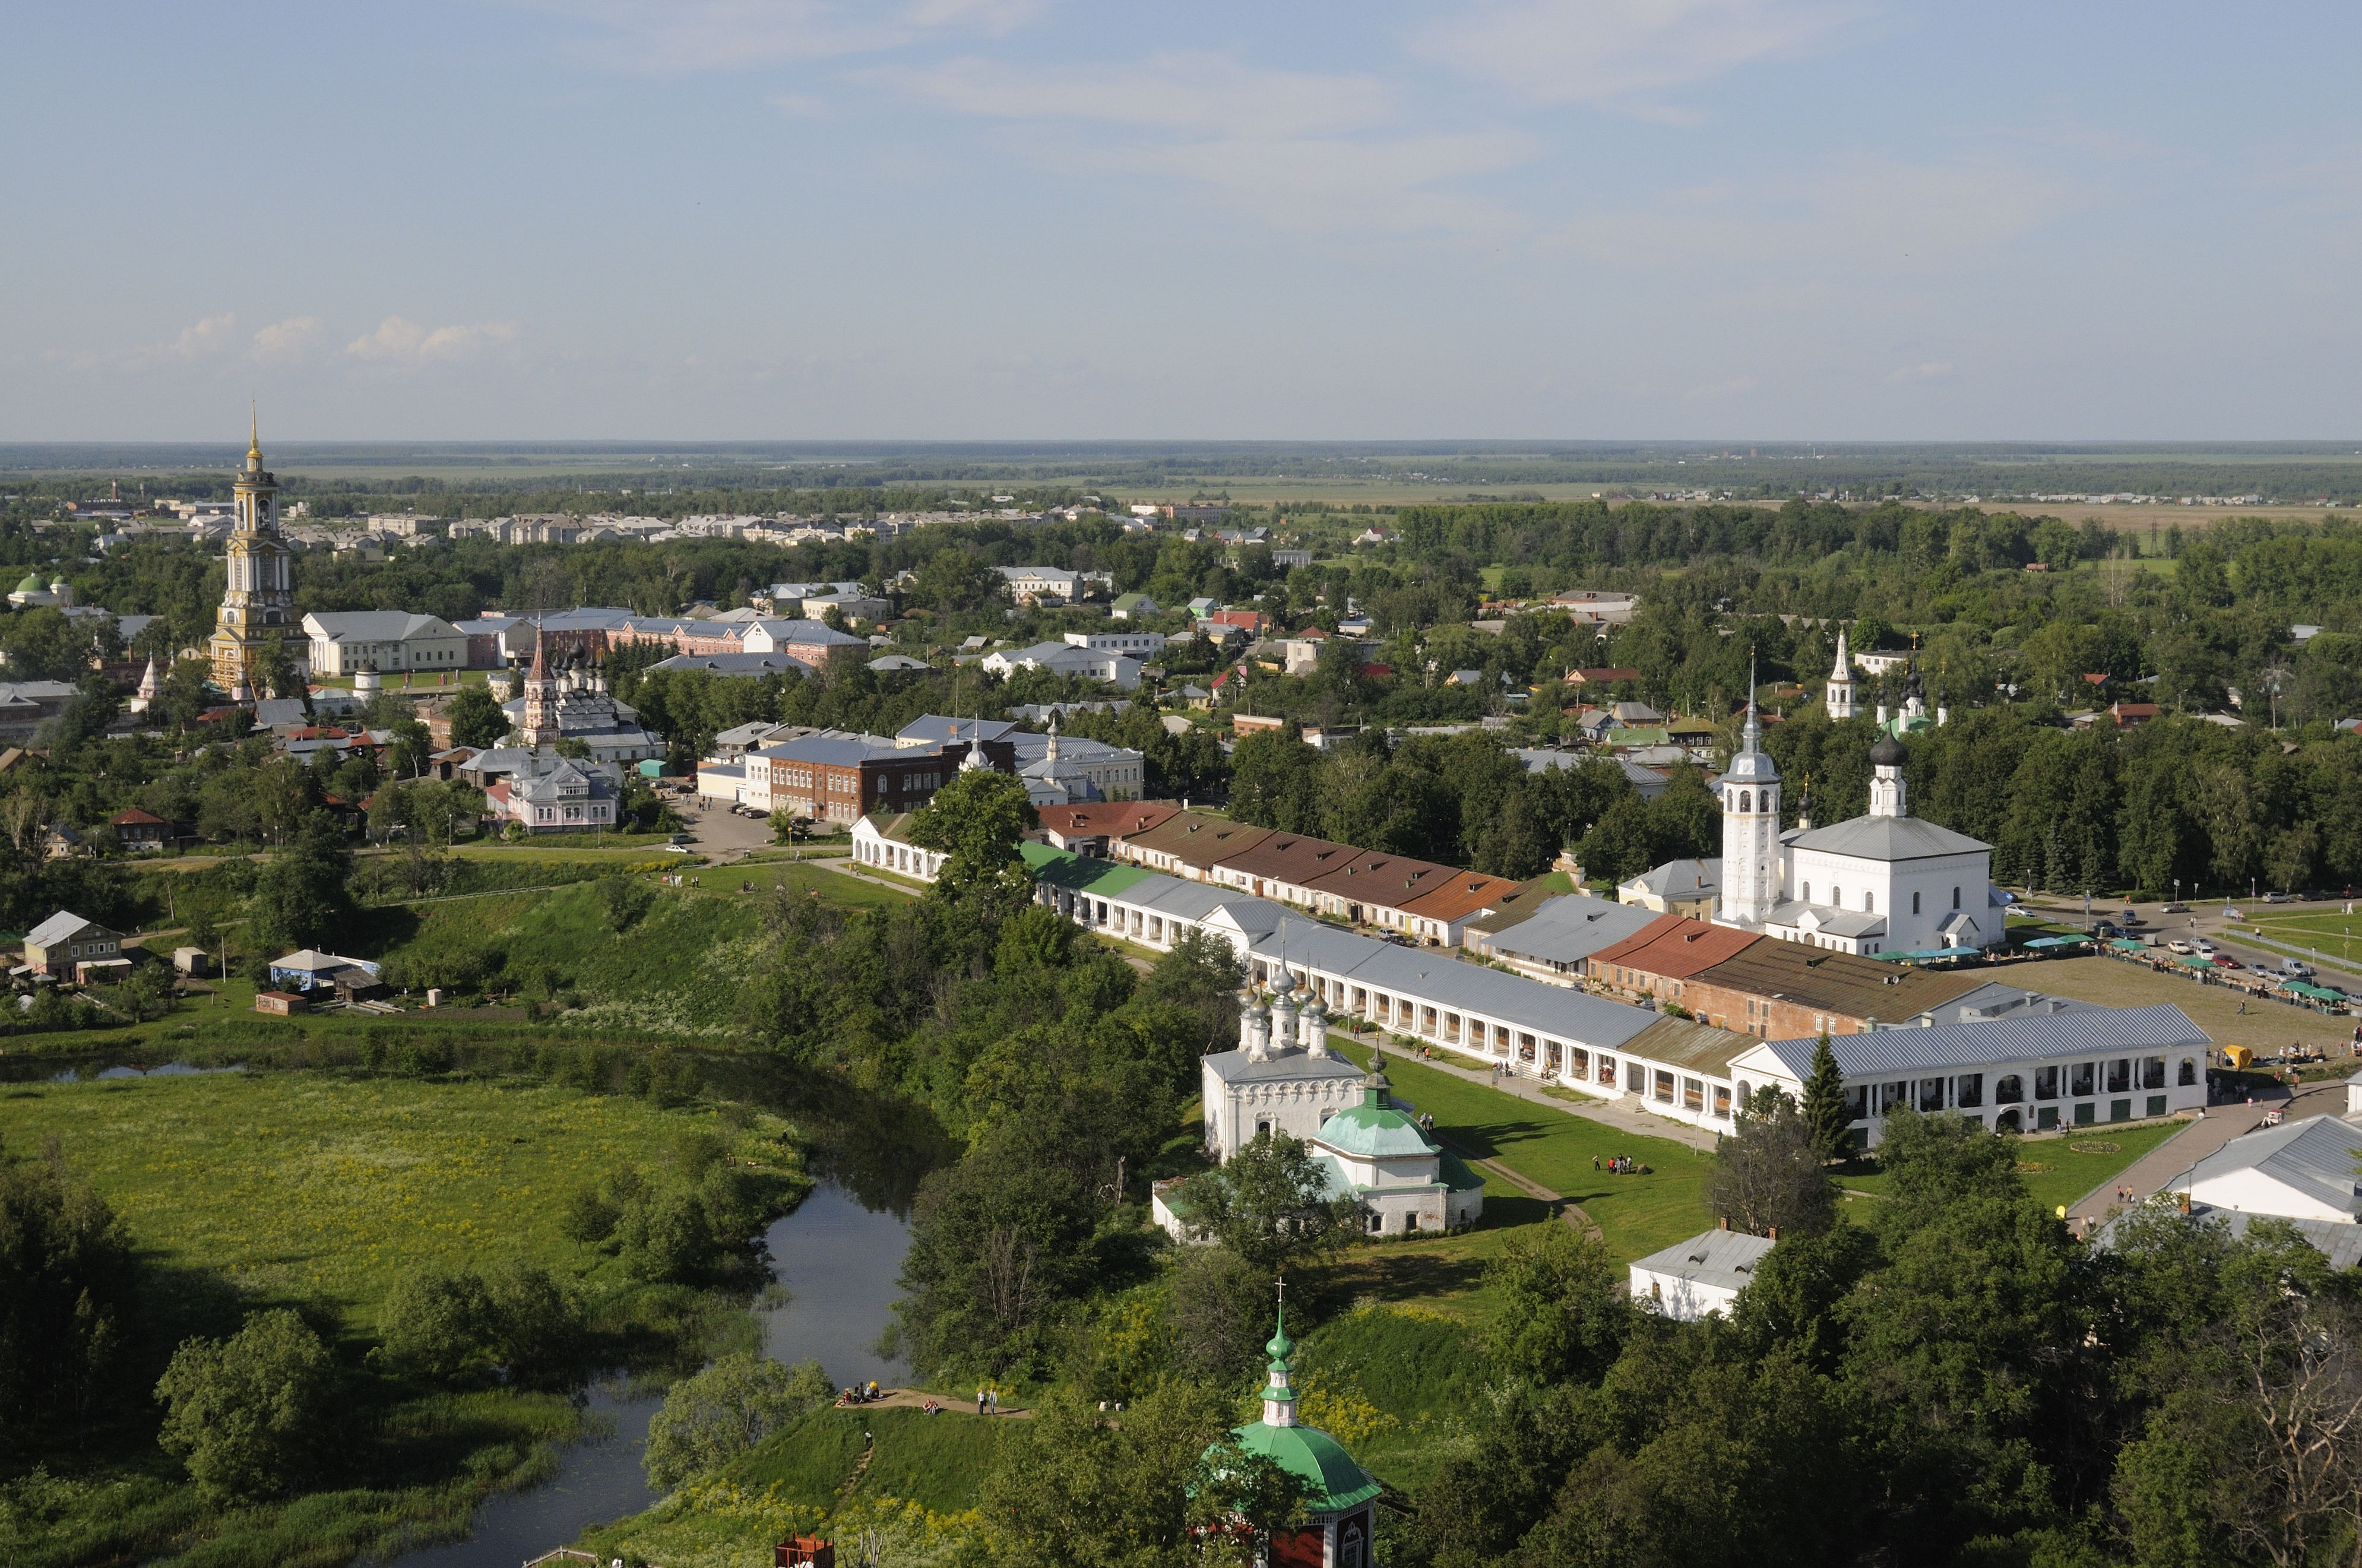 Суздаль (Suzdal), Russia - Monterrasol small group tours to Суздаль (Suzdal), Russia. Travel agency offers small group car tours to see Суздаль (Suzdal) in Russia. Order small group tour to Суздаль (Suzdal) with departure date on request.